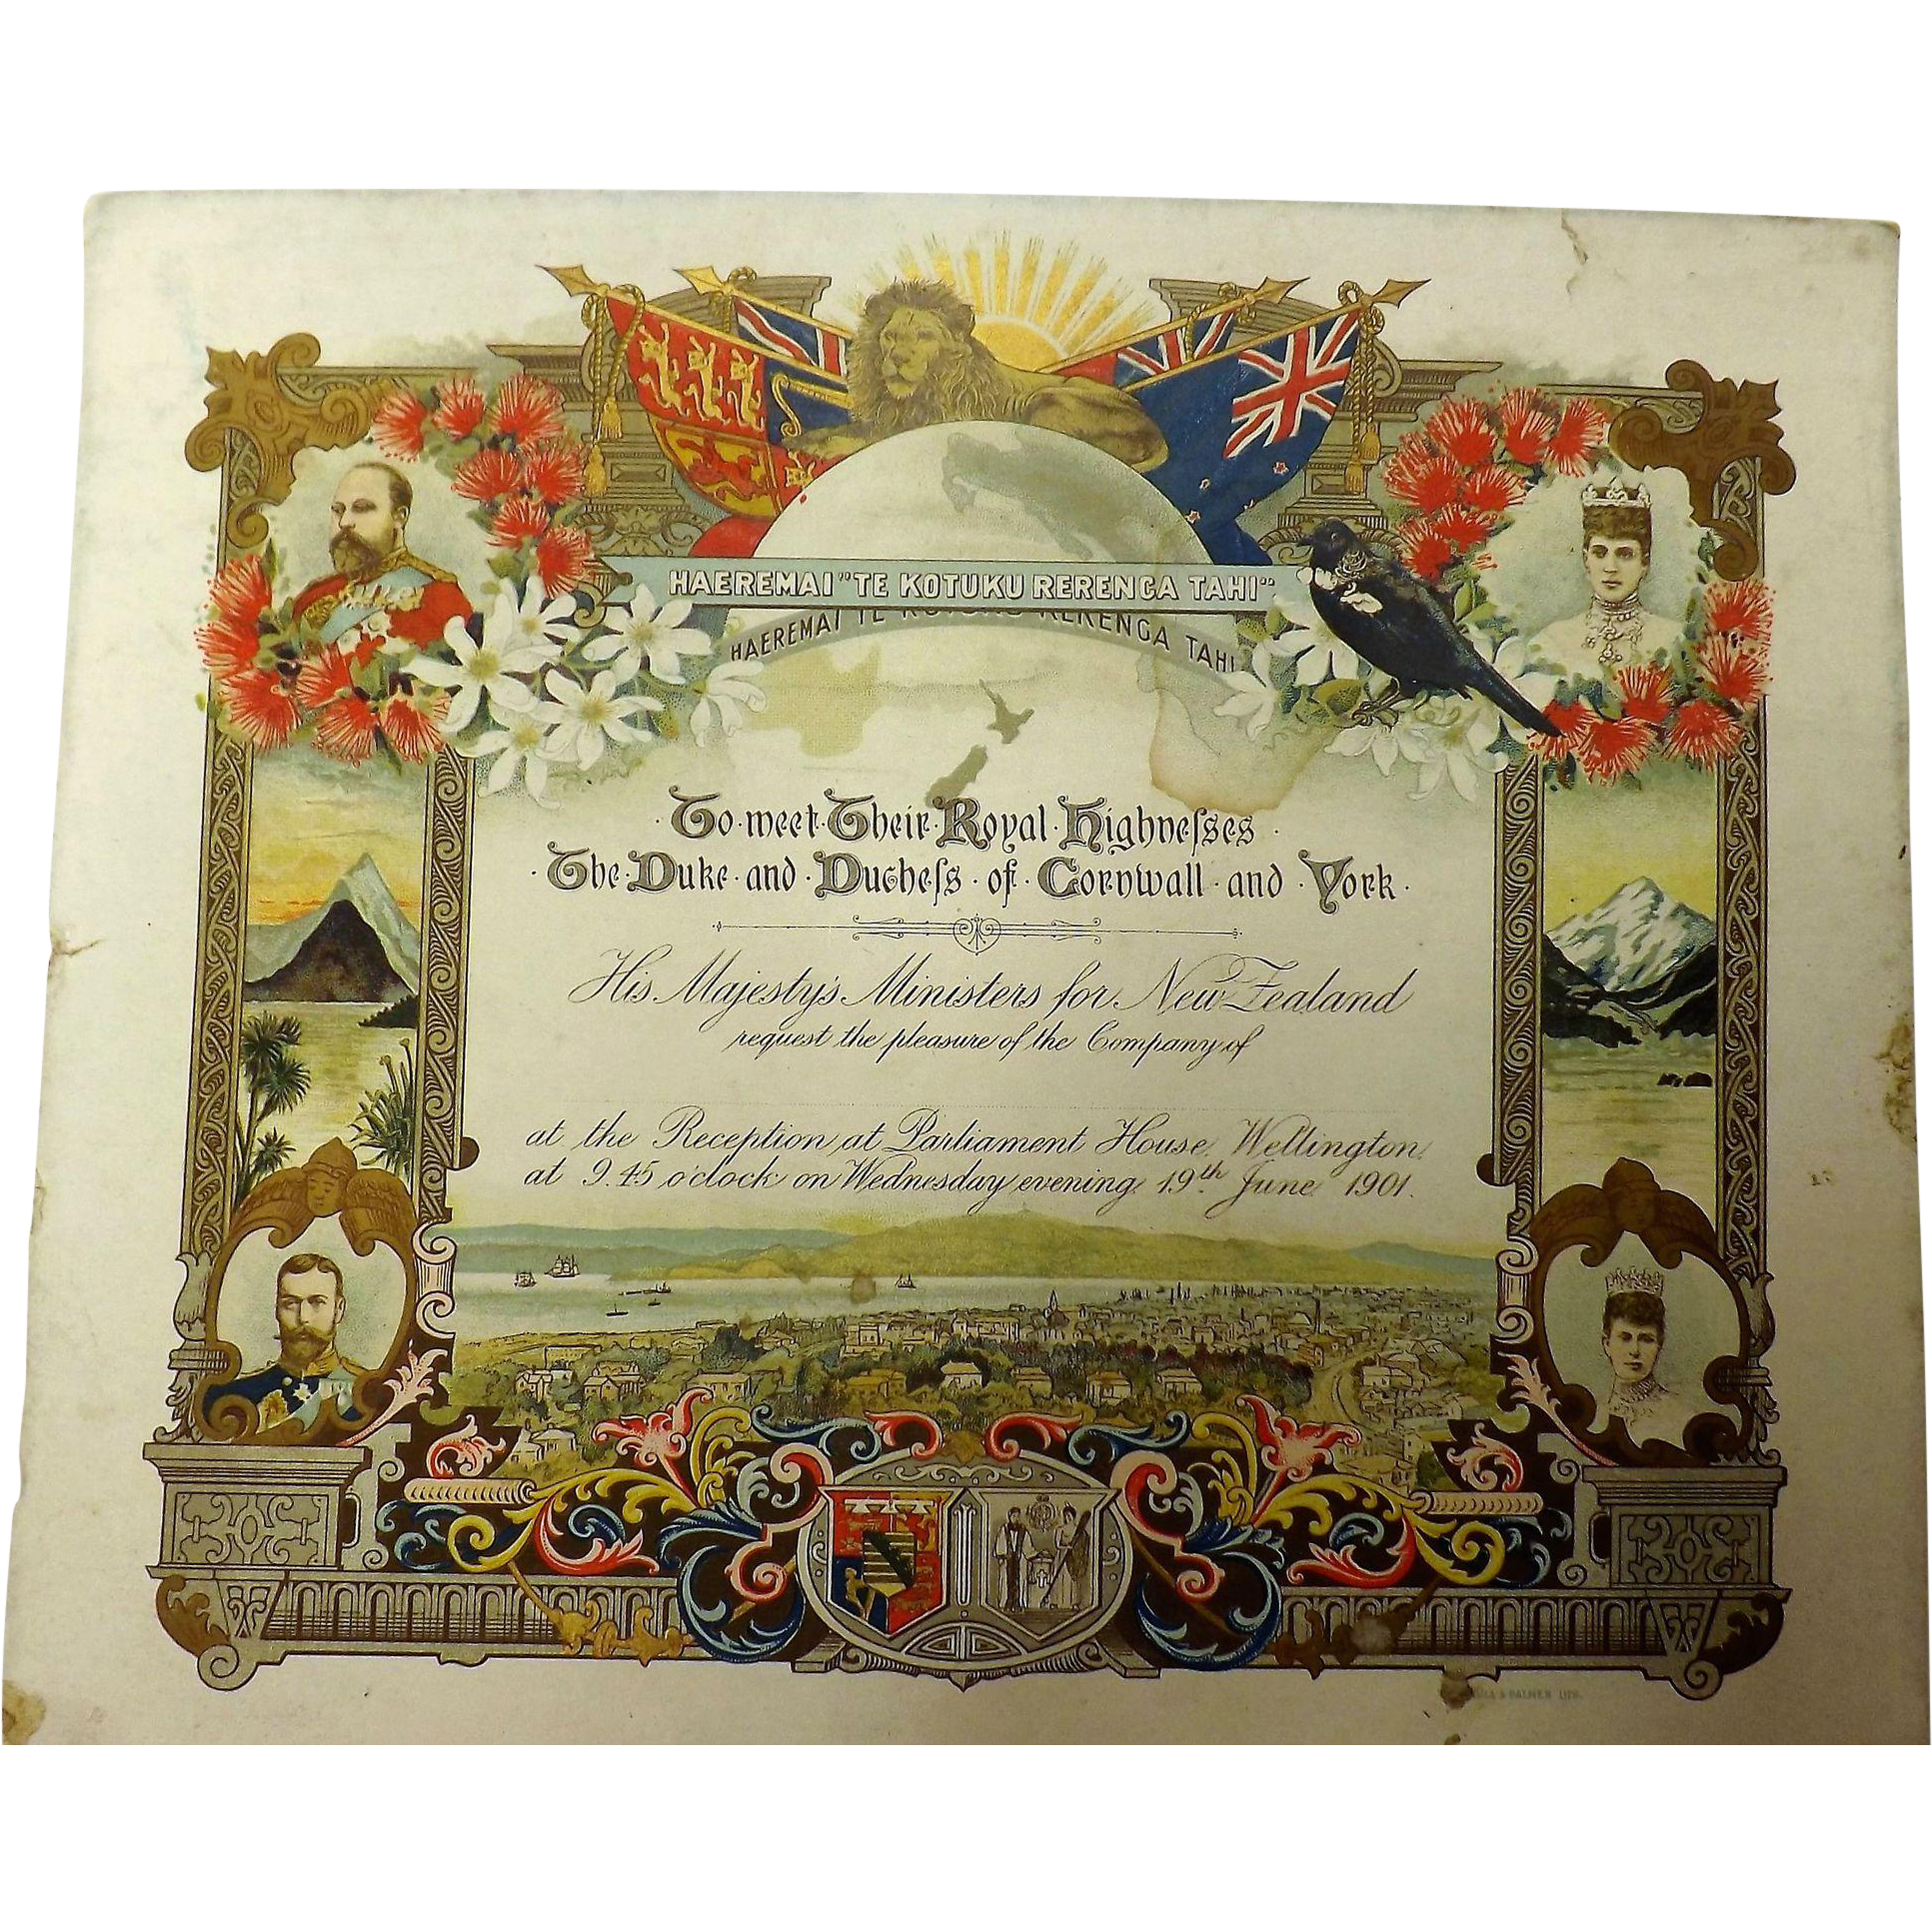 RARE 1901 Parliamentary Invitation to Meet The Duke & Duchess of Cornwall - Wellington, New Zealand